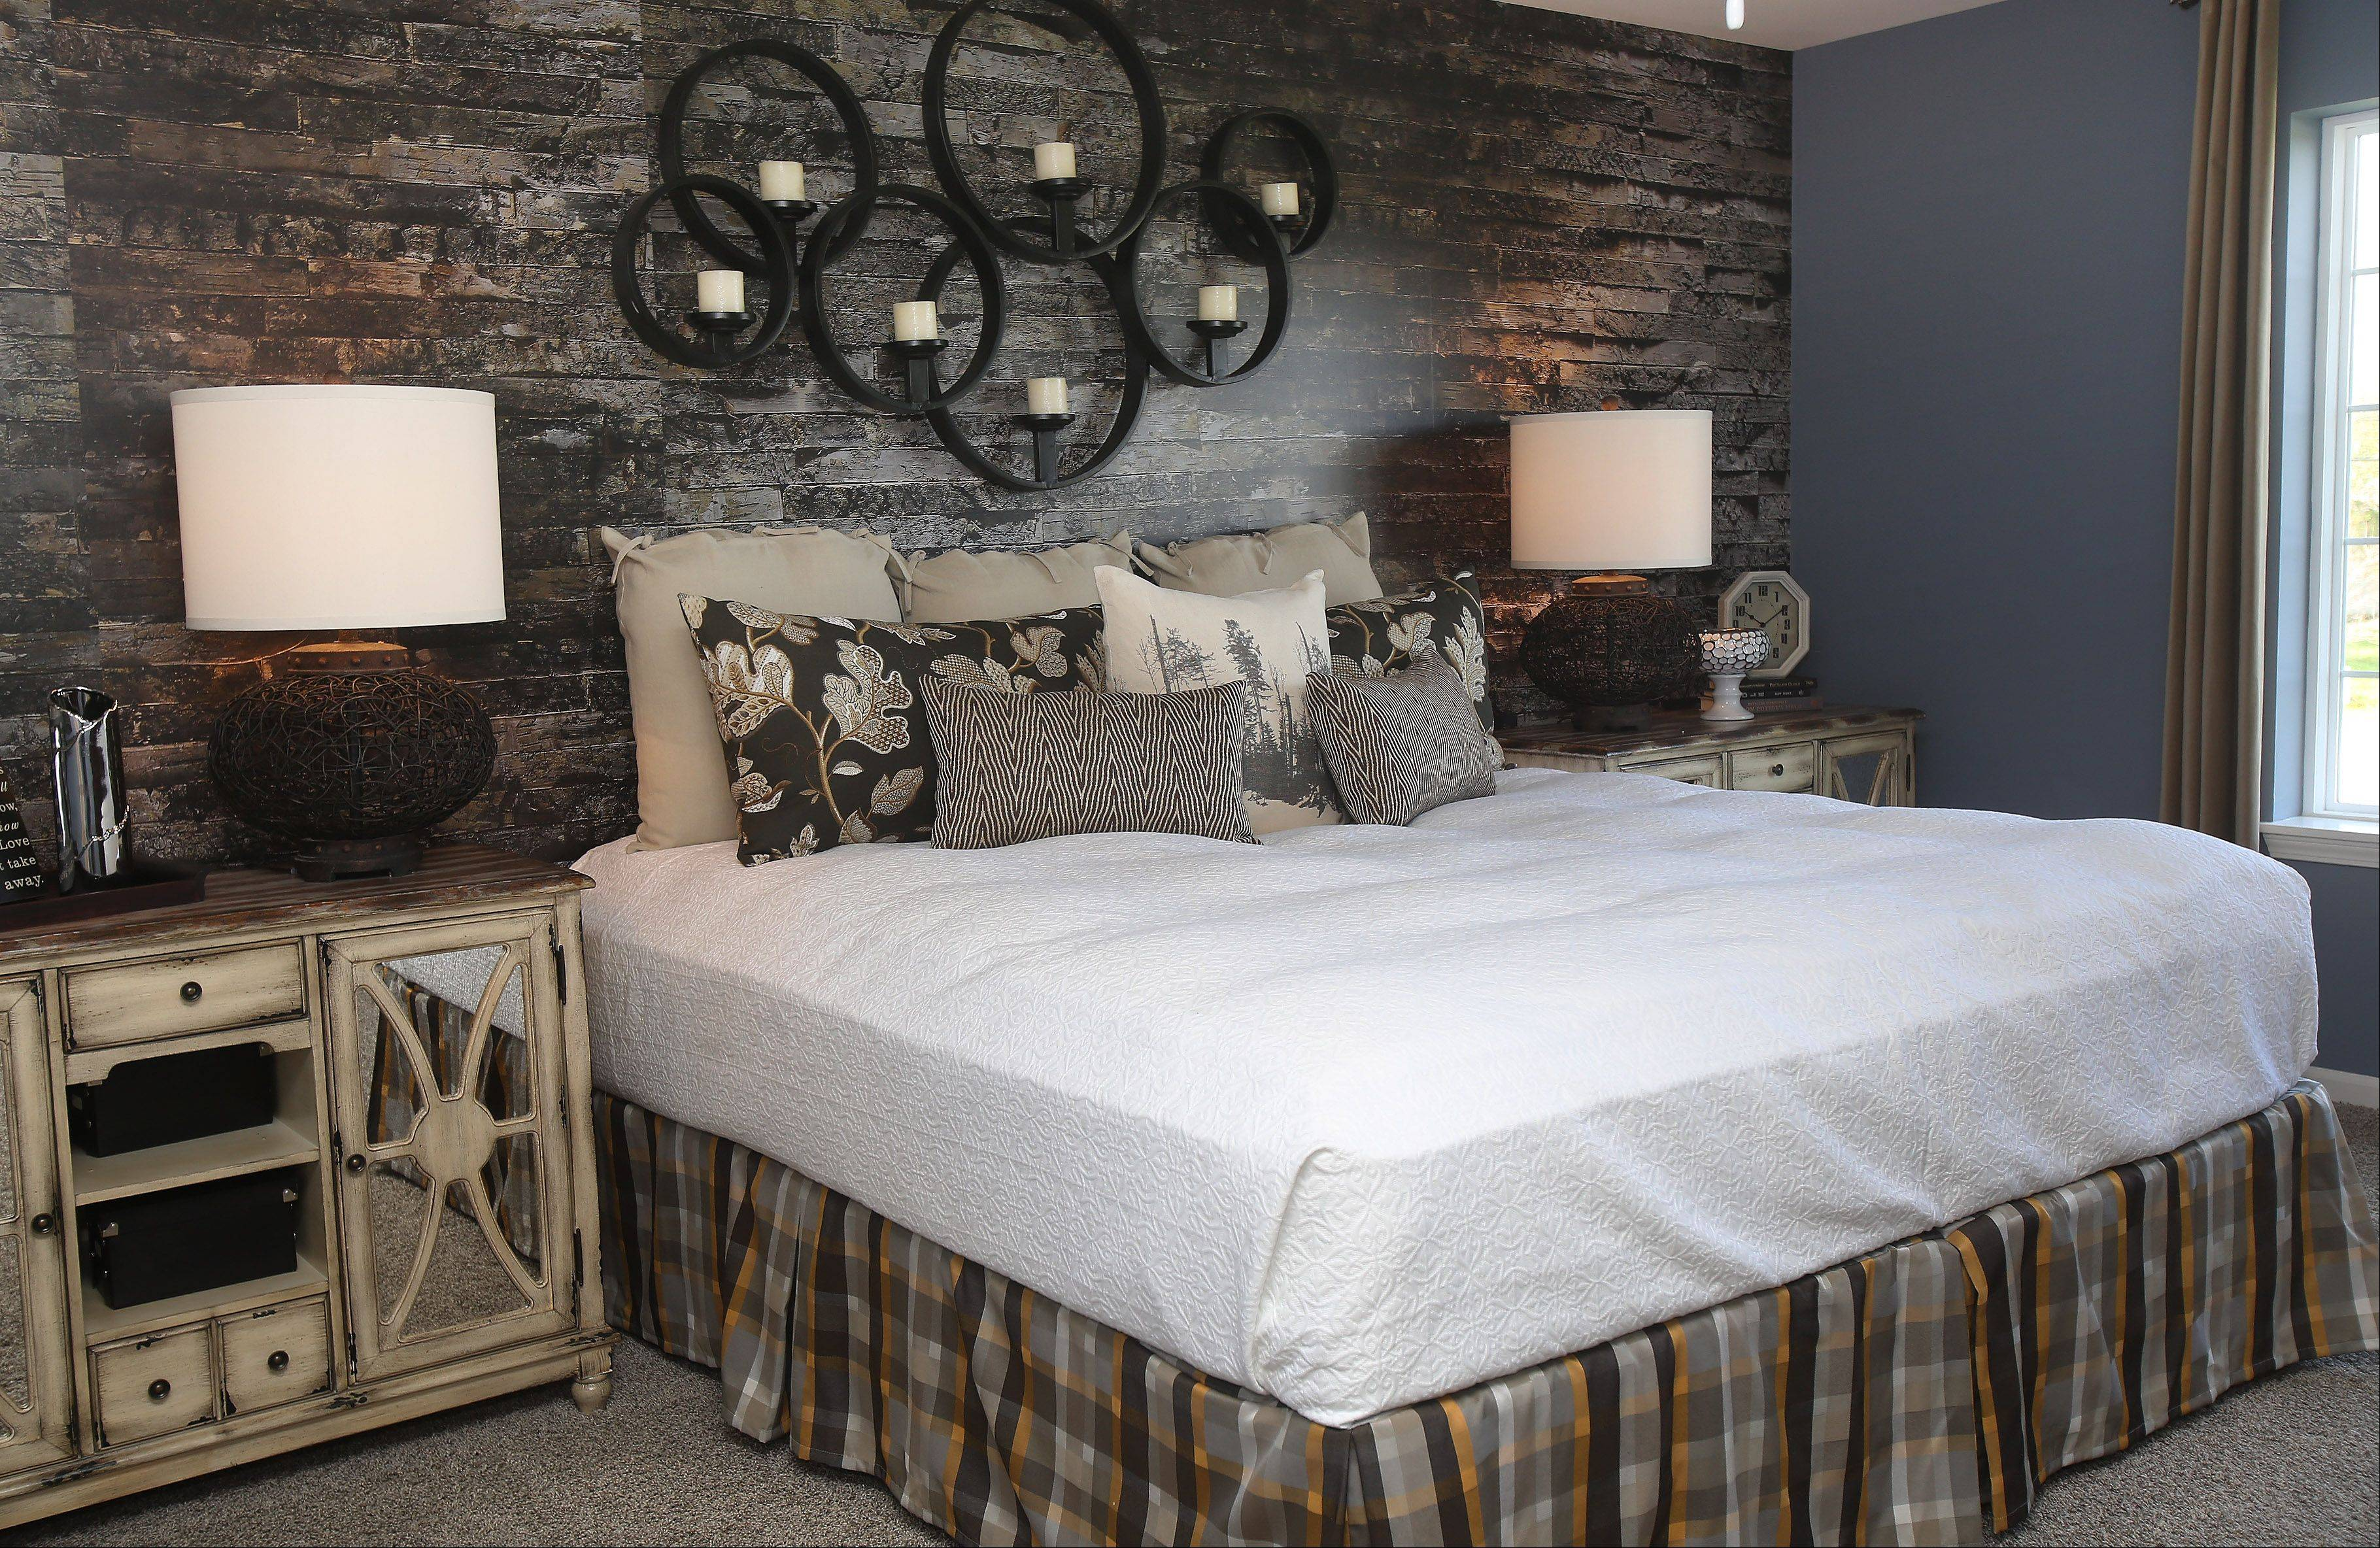 The master bedroom has a rustic flair in the recently opened Tuscan model.